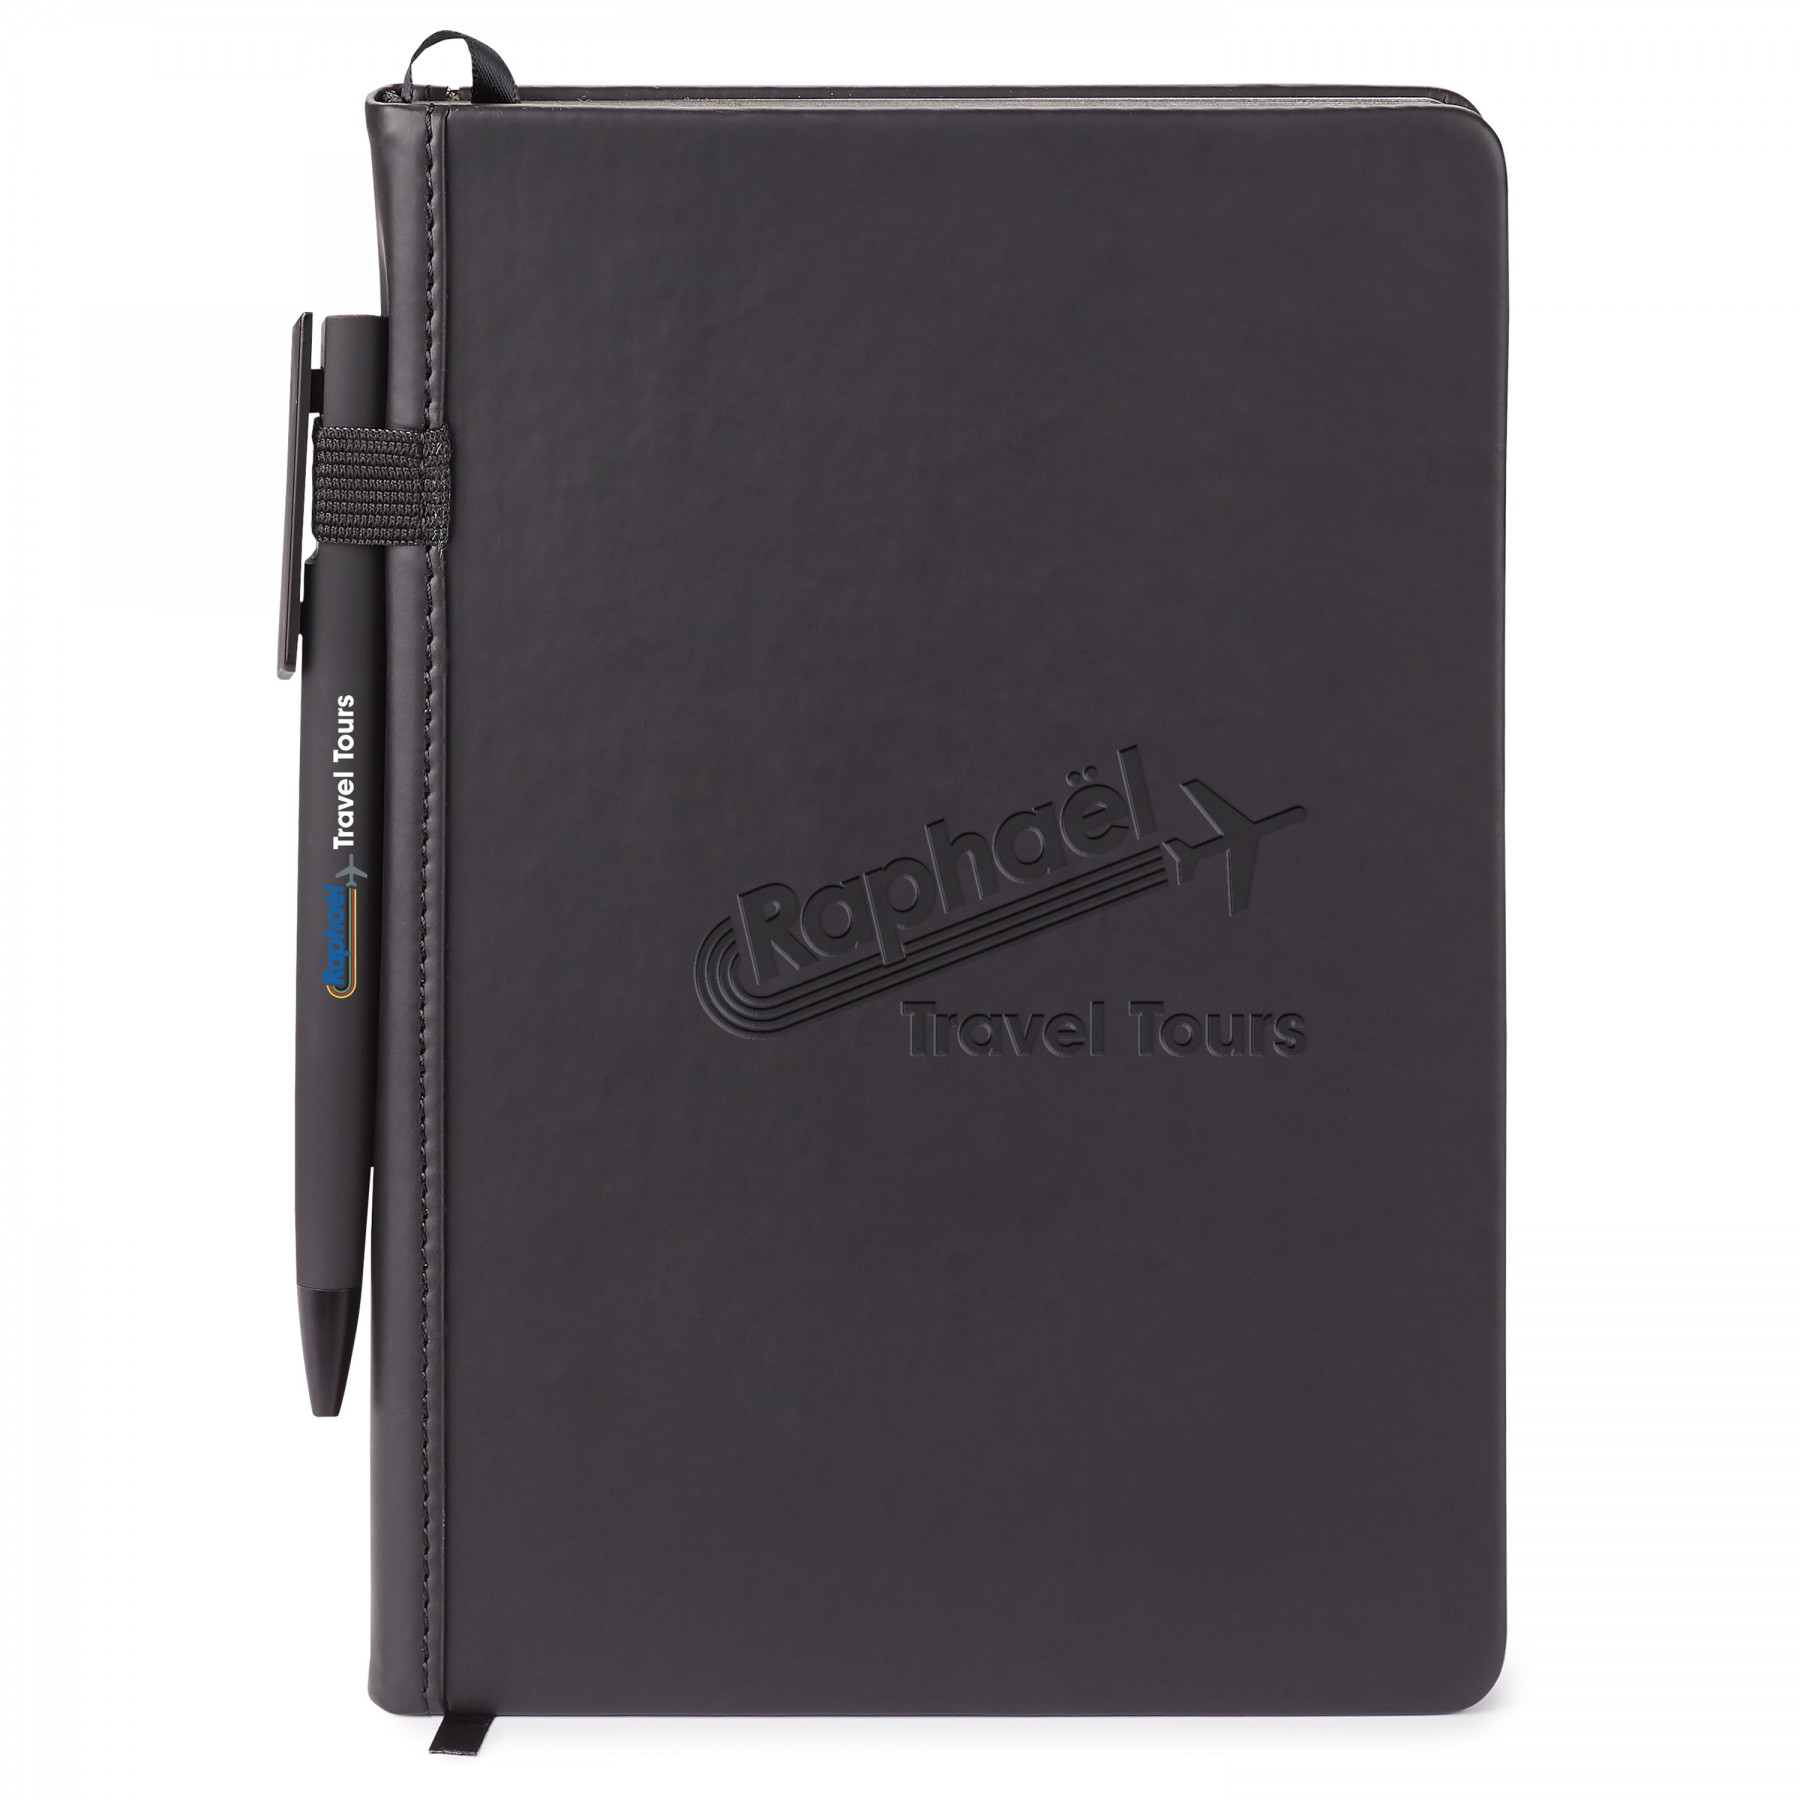 Donald Hard Cover Journal Combo, ST4361, Debossed Logo